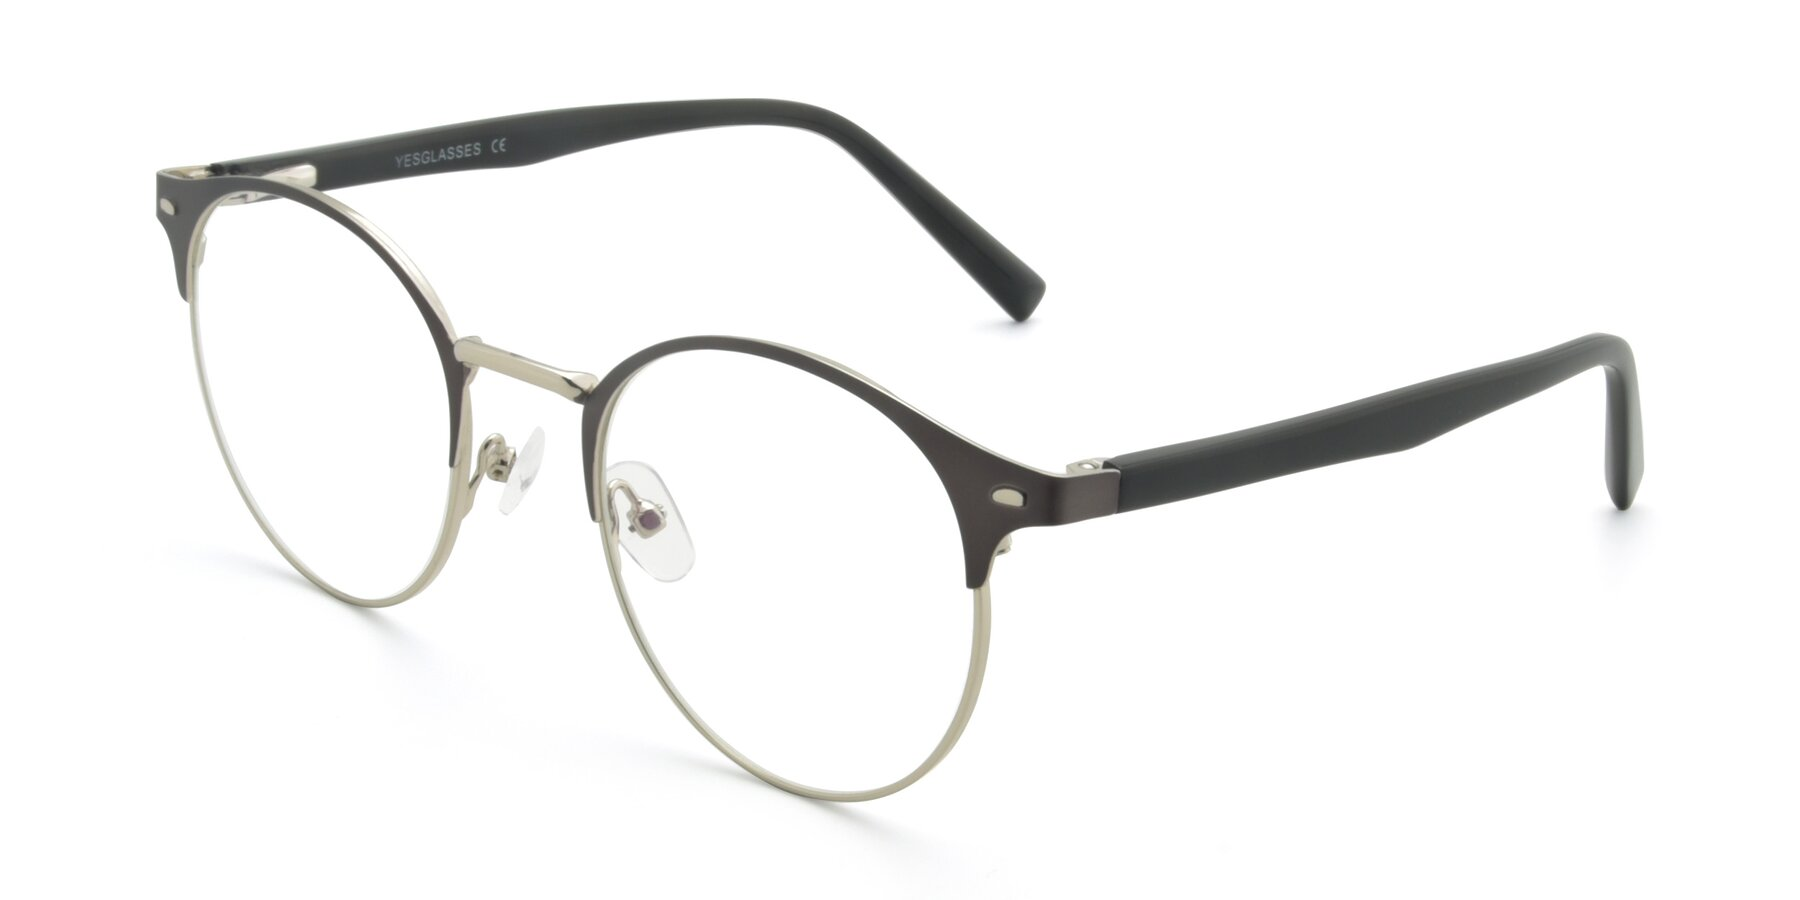 Angle of 9099 in Gray-Silver with Clear Eyeglass Lenses